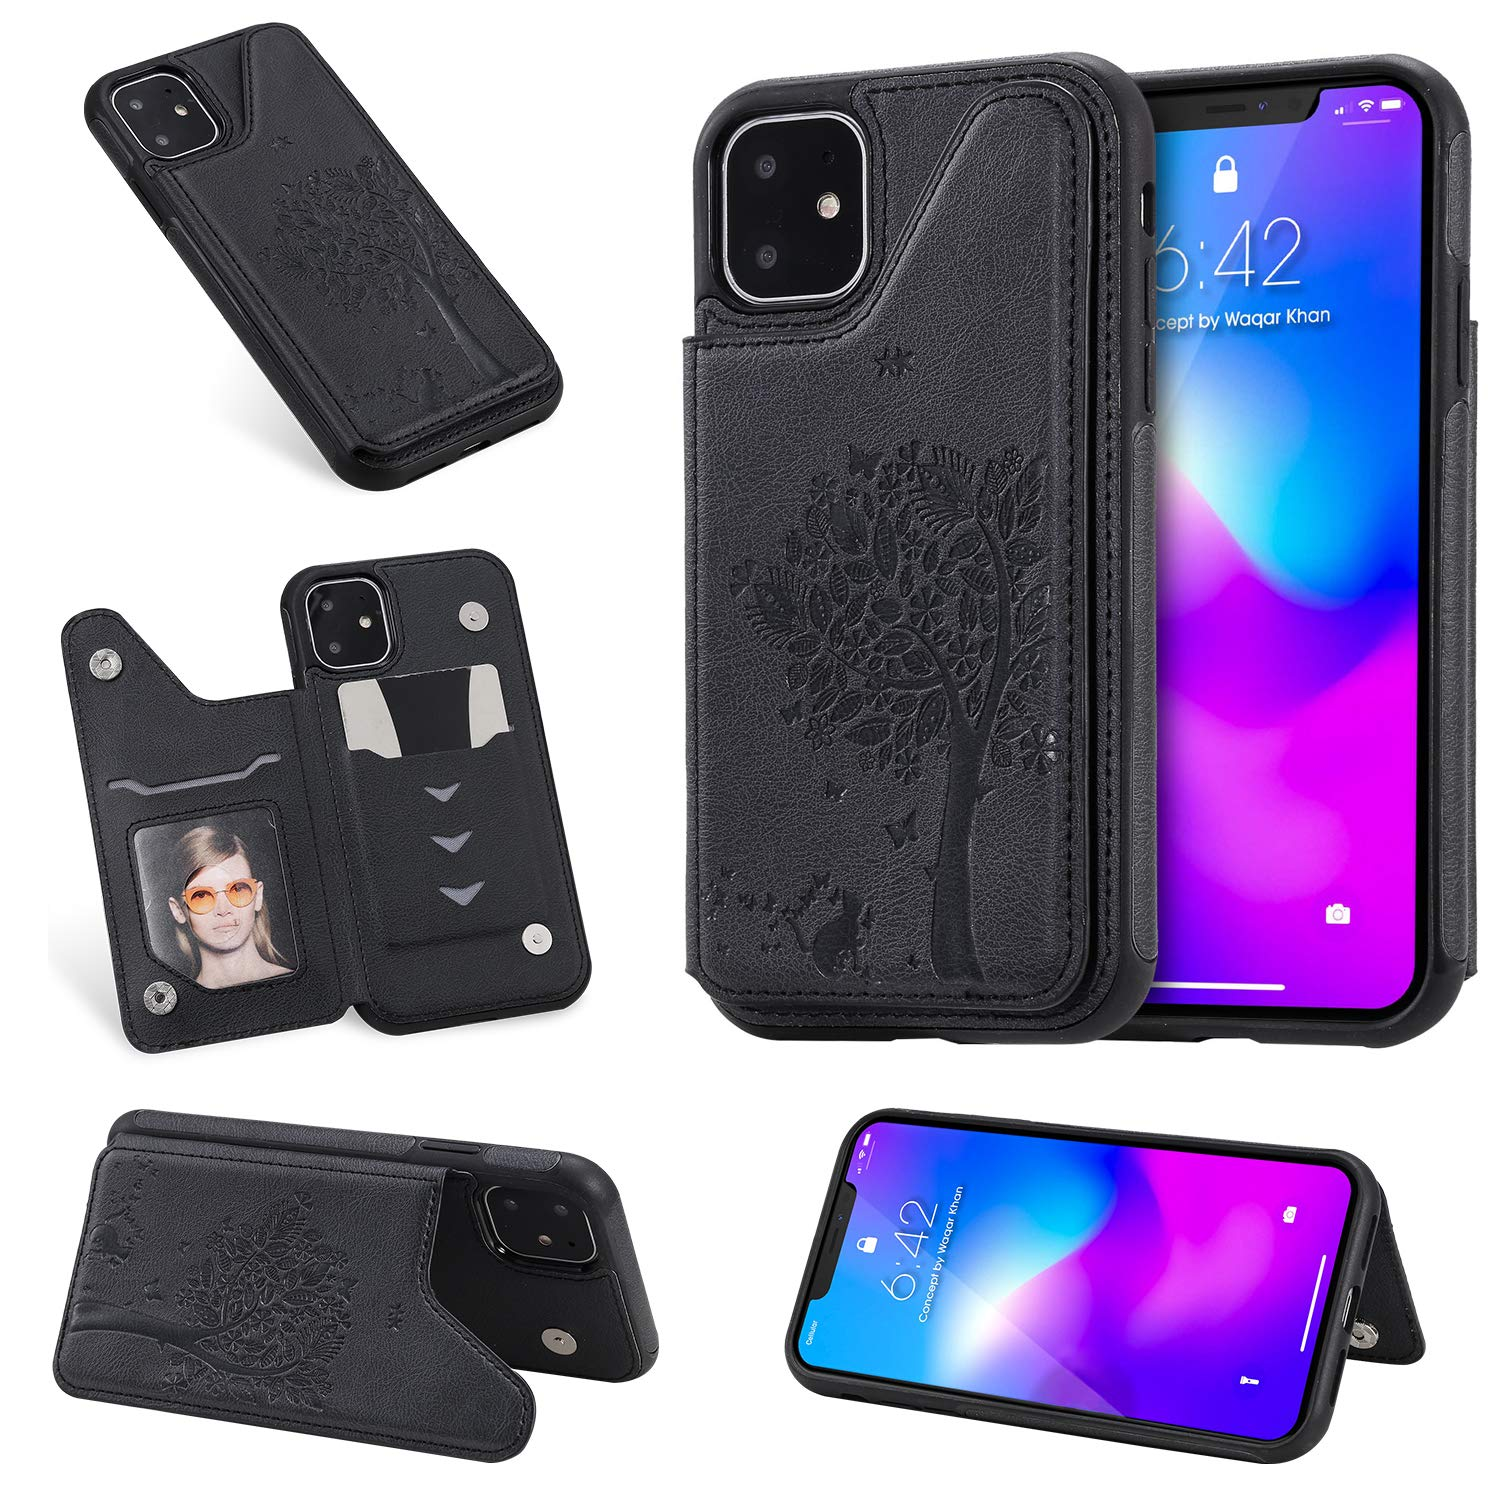 Tznzxm iPhone 11 6.1 inch Case, Fashion Tree Cat Design PU Leather Kickstand Card Slots Double Magnetic Clasp Durable Shockproof Soft TPU Back Wallet Flip Cover for iPhone 6.1 inch (2019) Black by Tznzxm